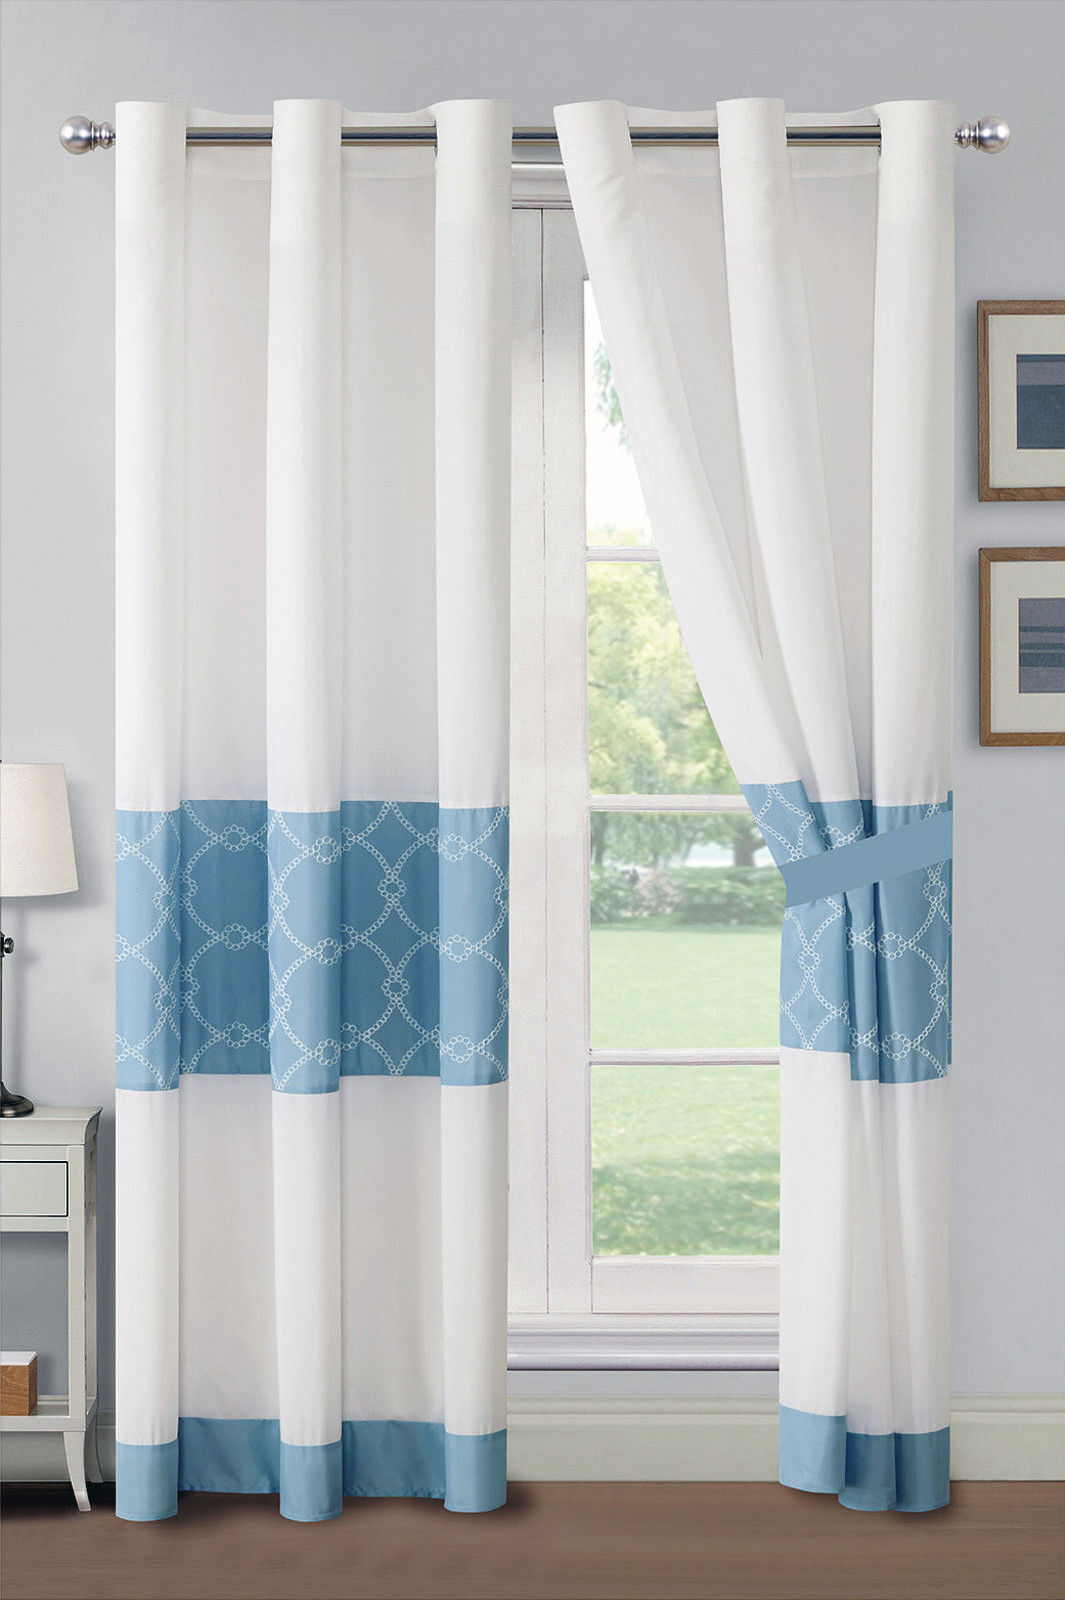 Primary image for 4-Pc Azora Floral Circle Trellis Embroidery Curtain Set Blue Off-White Grommet